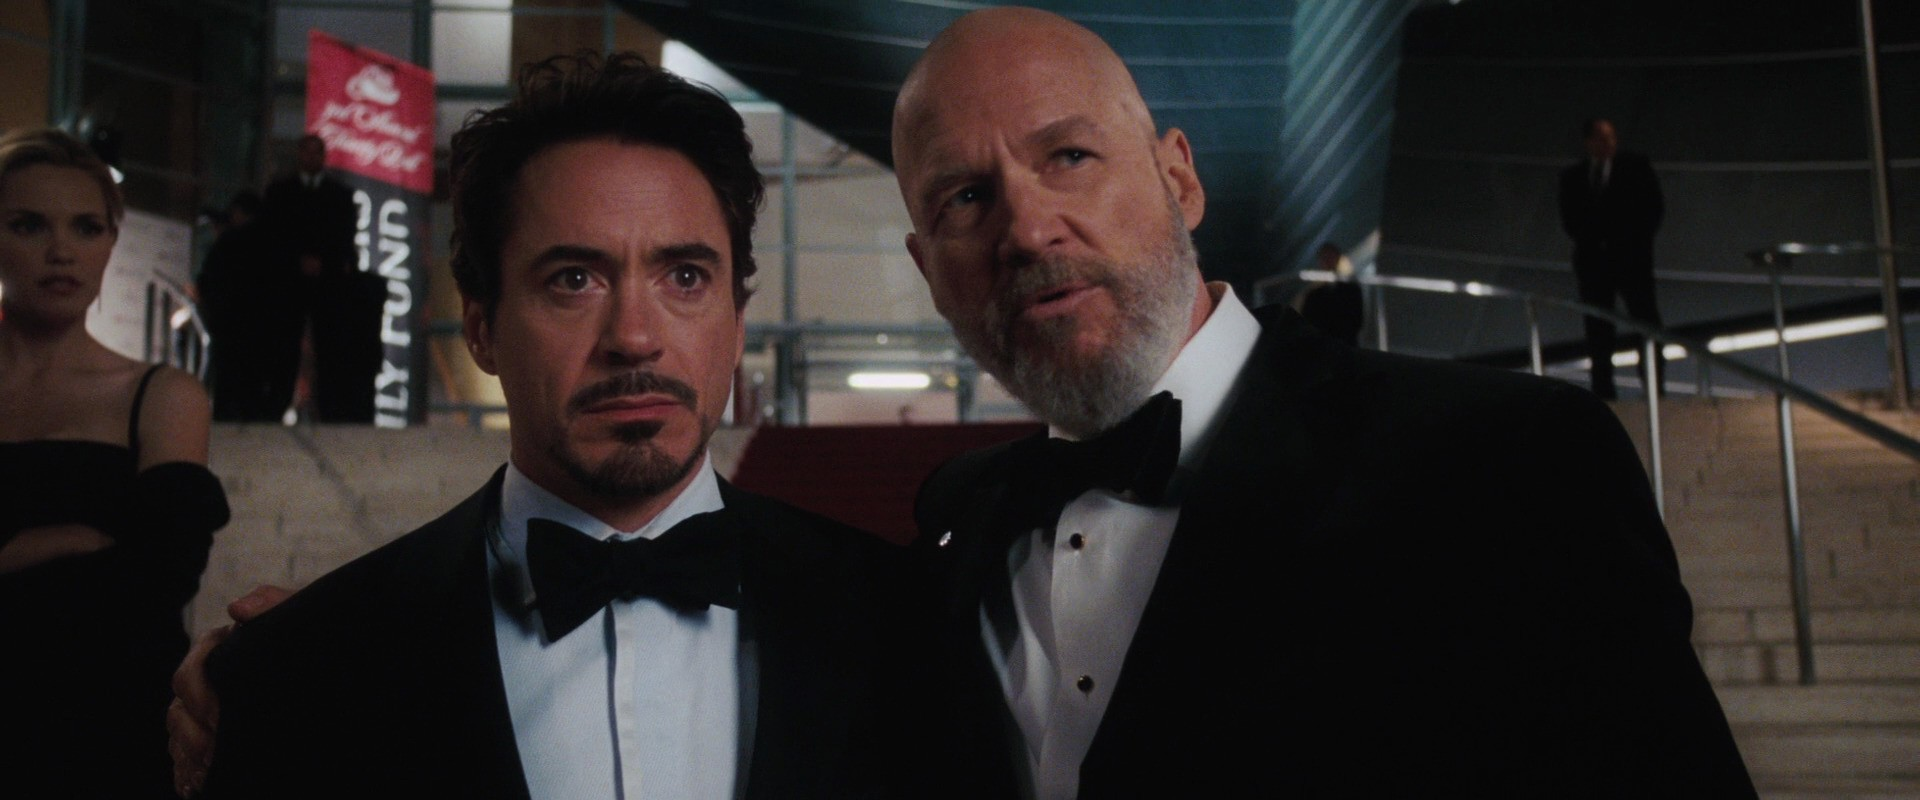 http://caps.pictures/200/8-iron-man1/full/iron-man1-movie-screencaps.com-8708.jpg